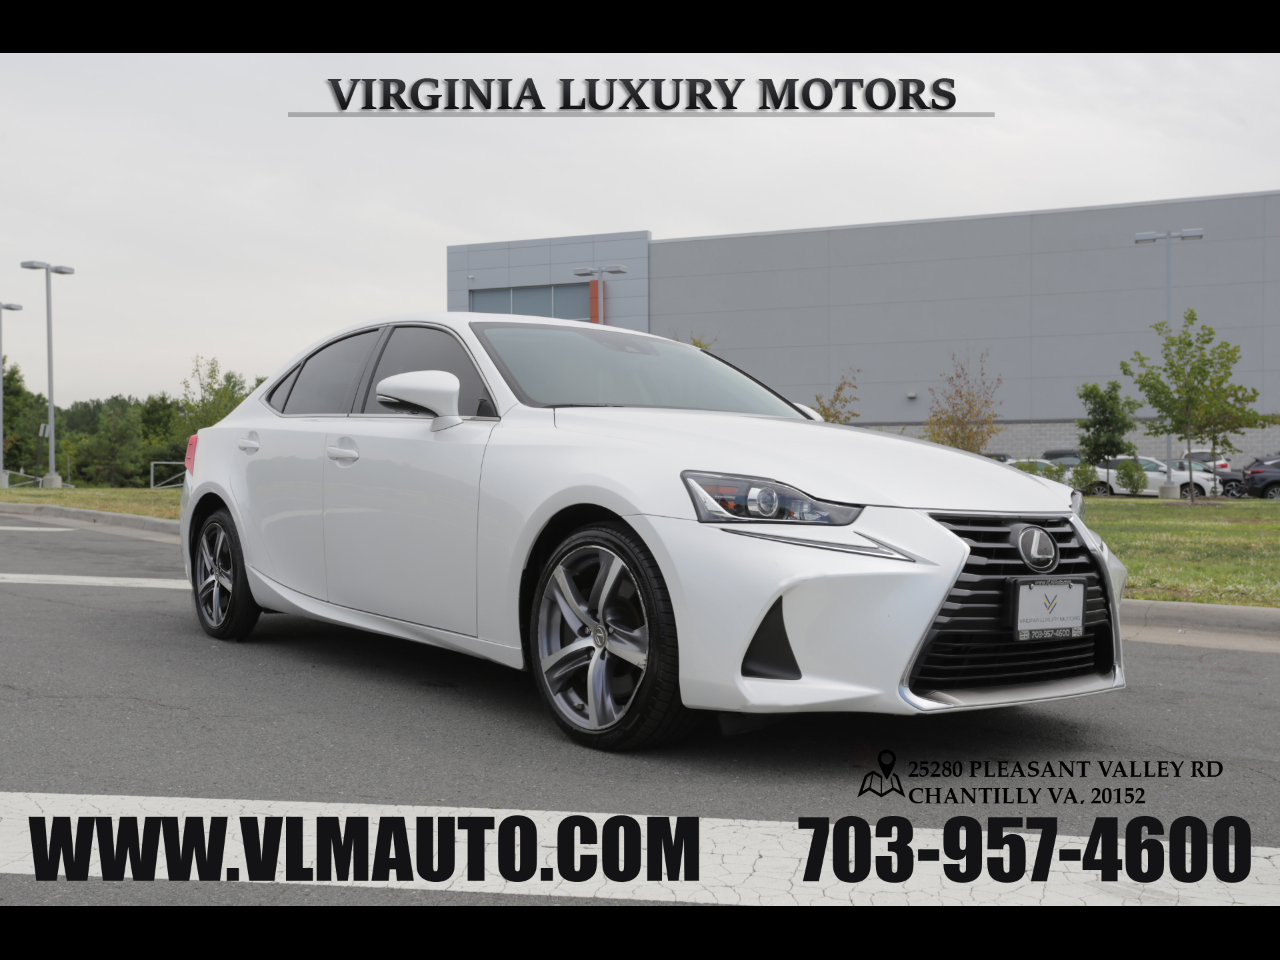 2018 Lexus IS 300 Premium Package